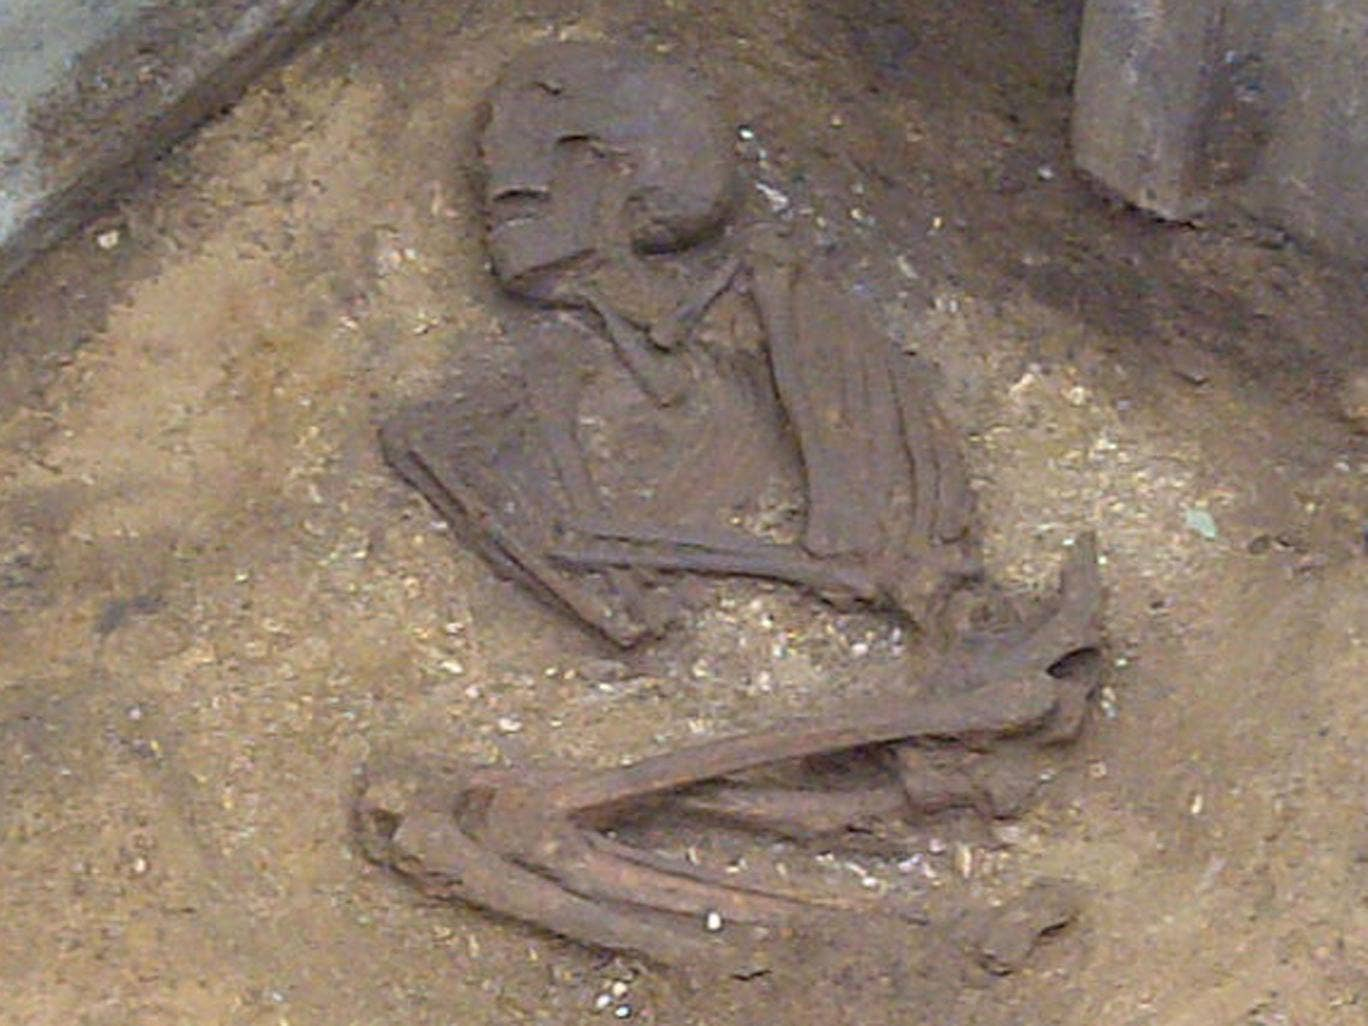 The skeleton was found in a crouched or foetal position, possibly mirroring birth